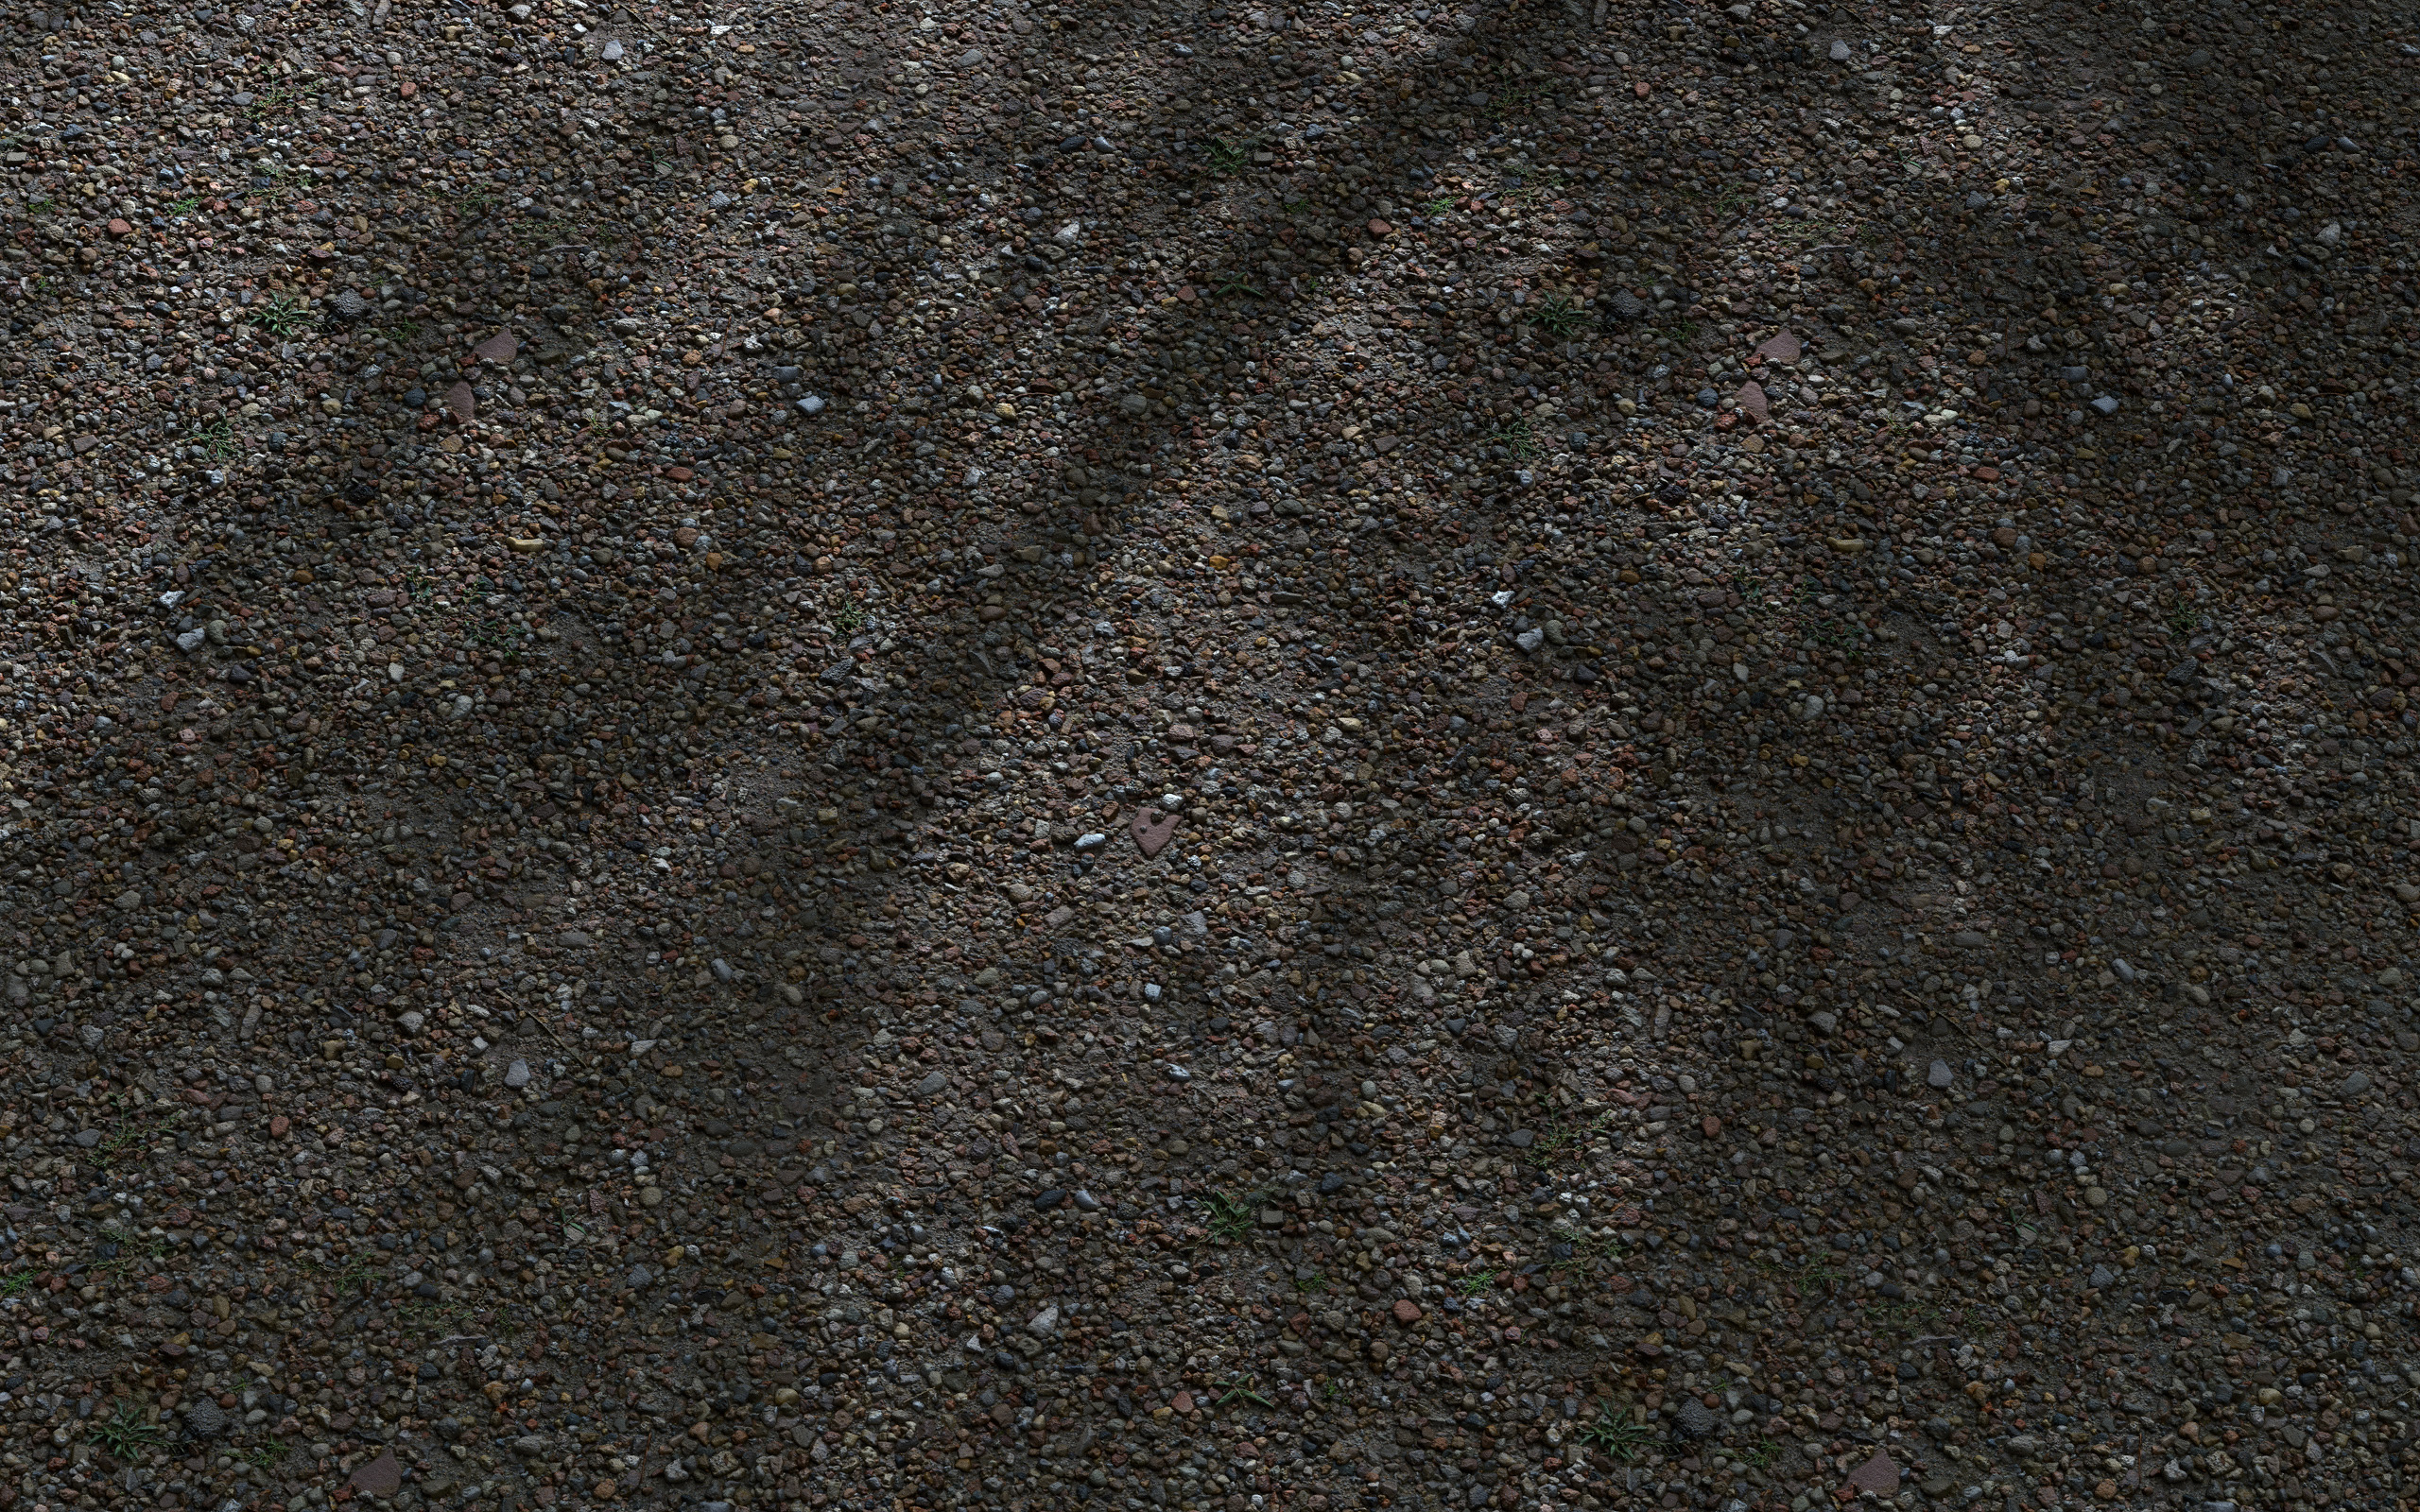 Free 3D Scanned Seamless Gravel Ground Material